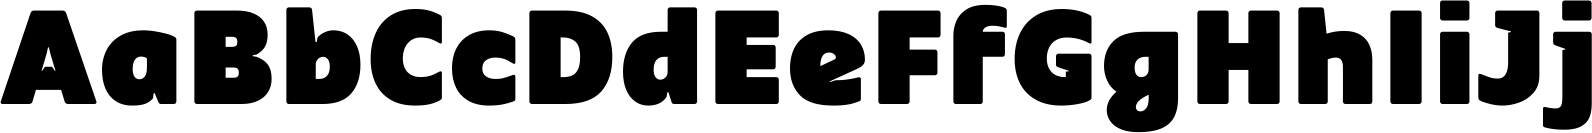 Blackye Regular Font